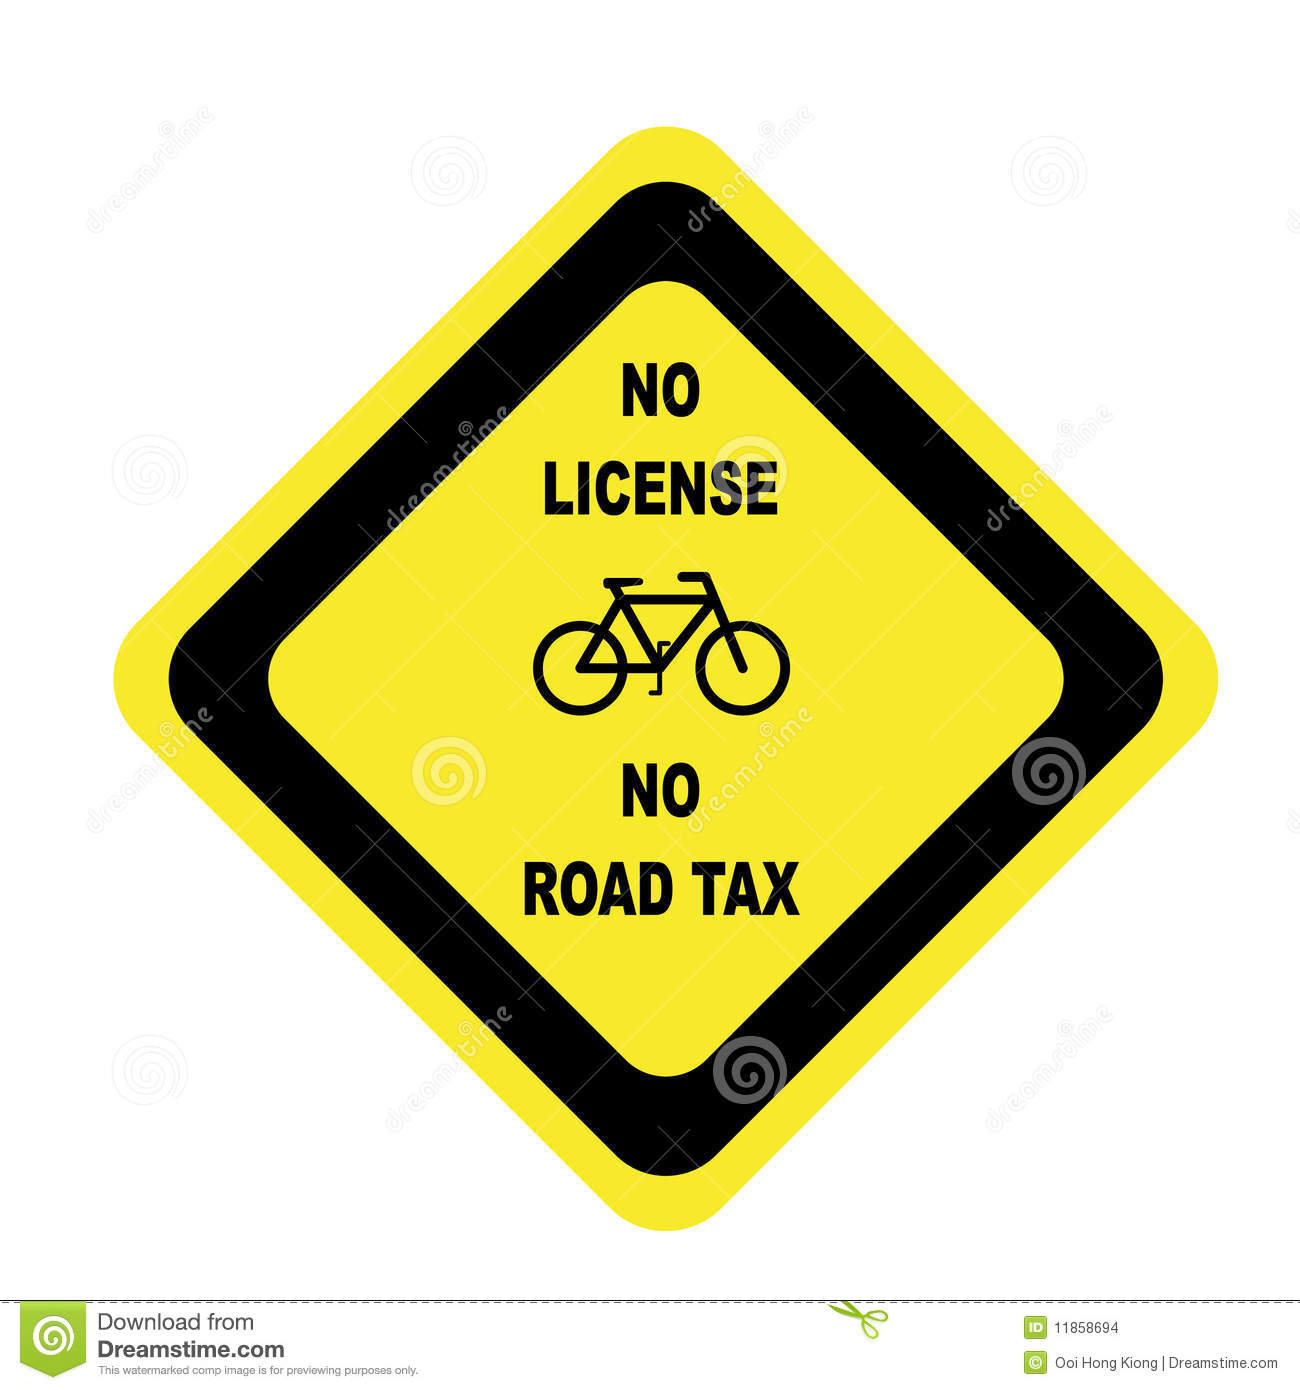 (No License No Road Tax)